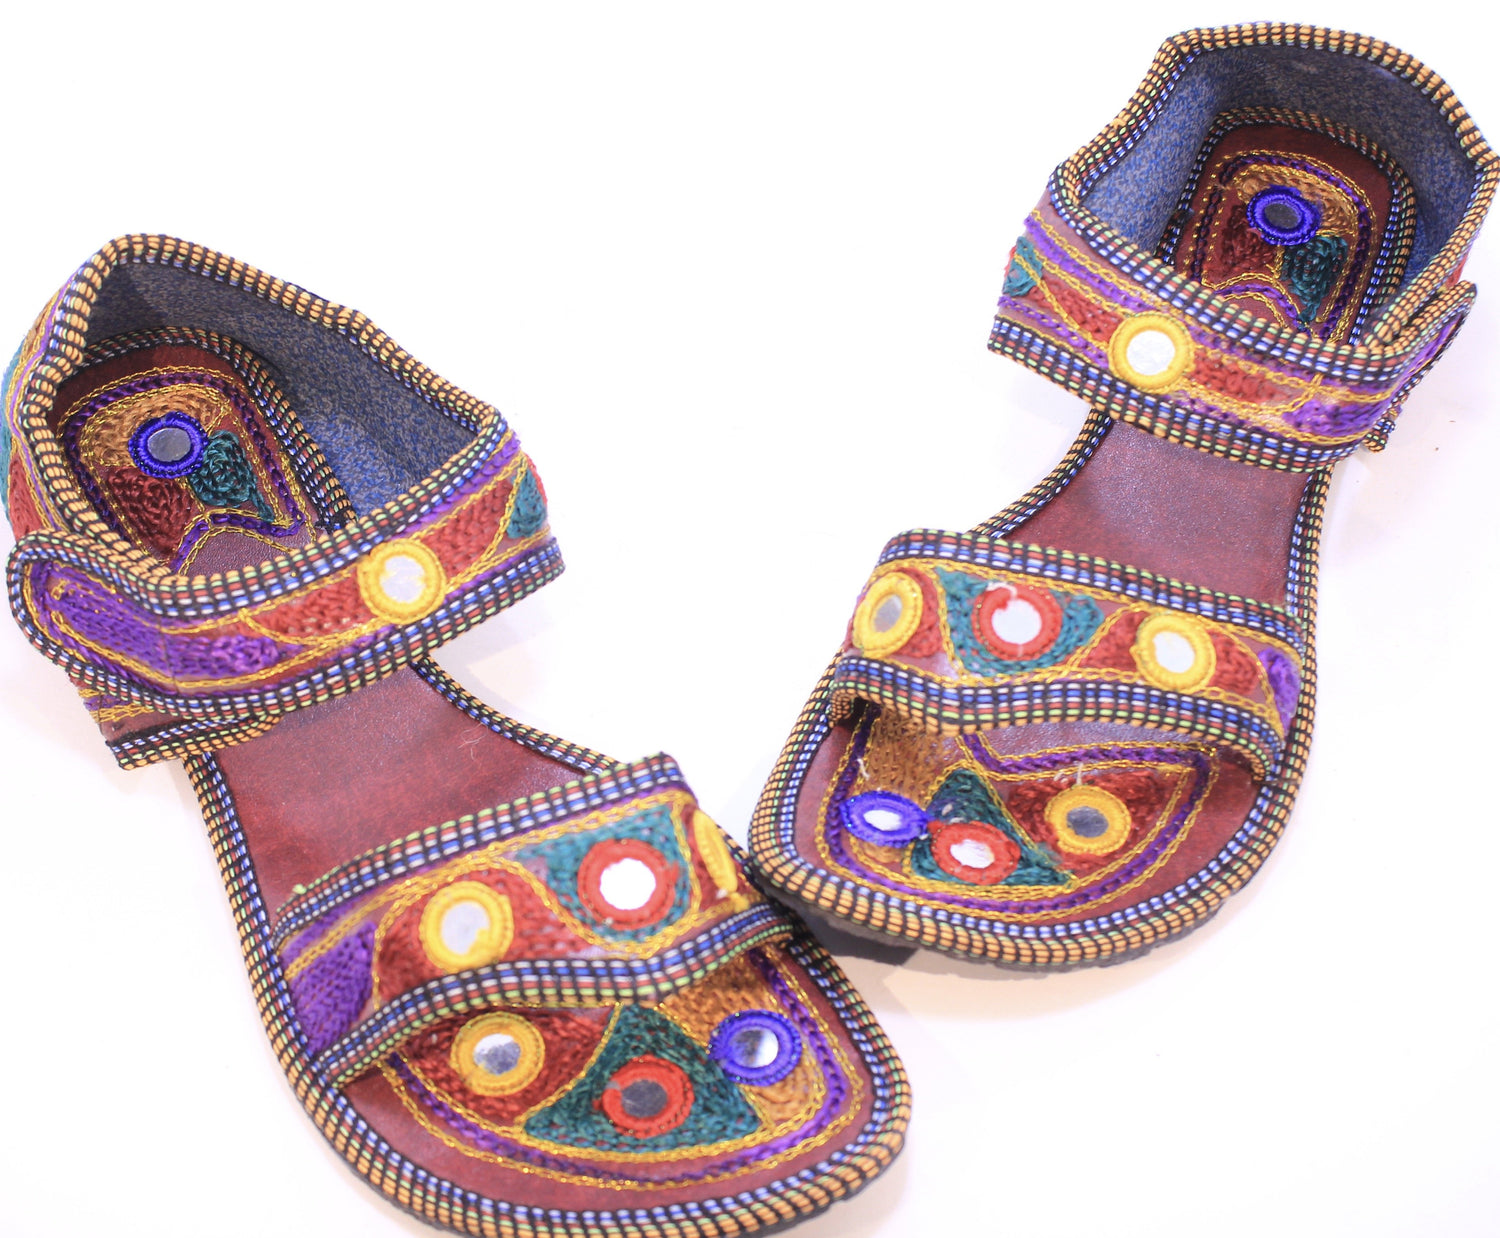 Hand Embroidered Sandals from India.